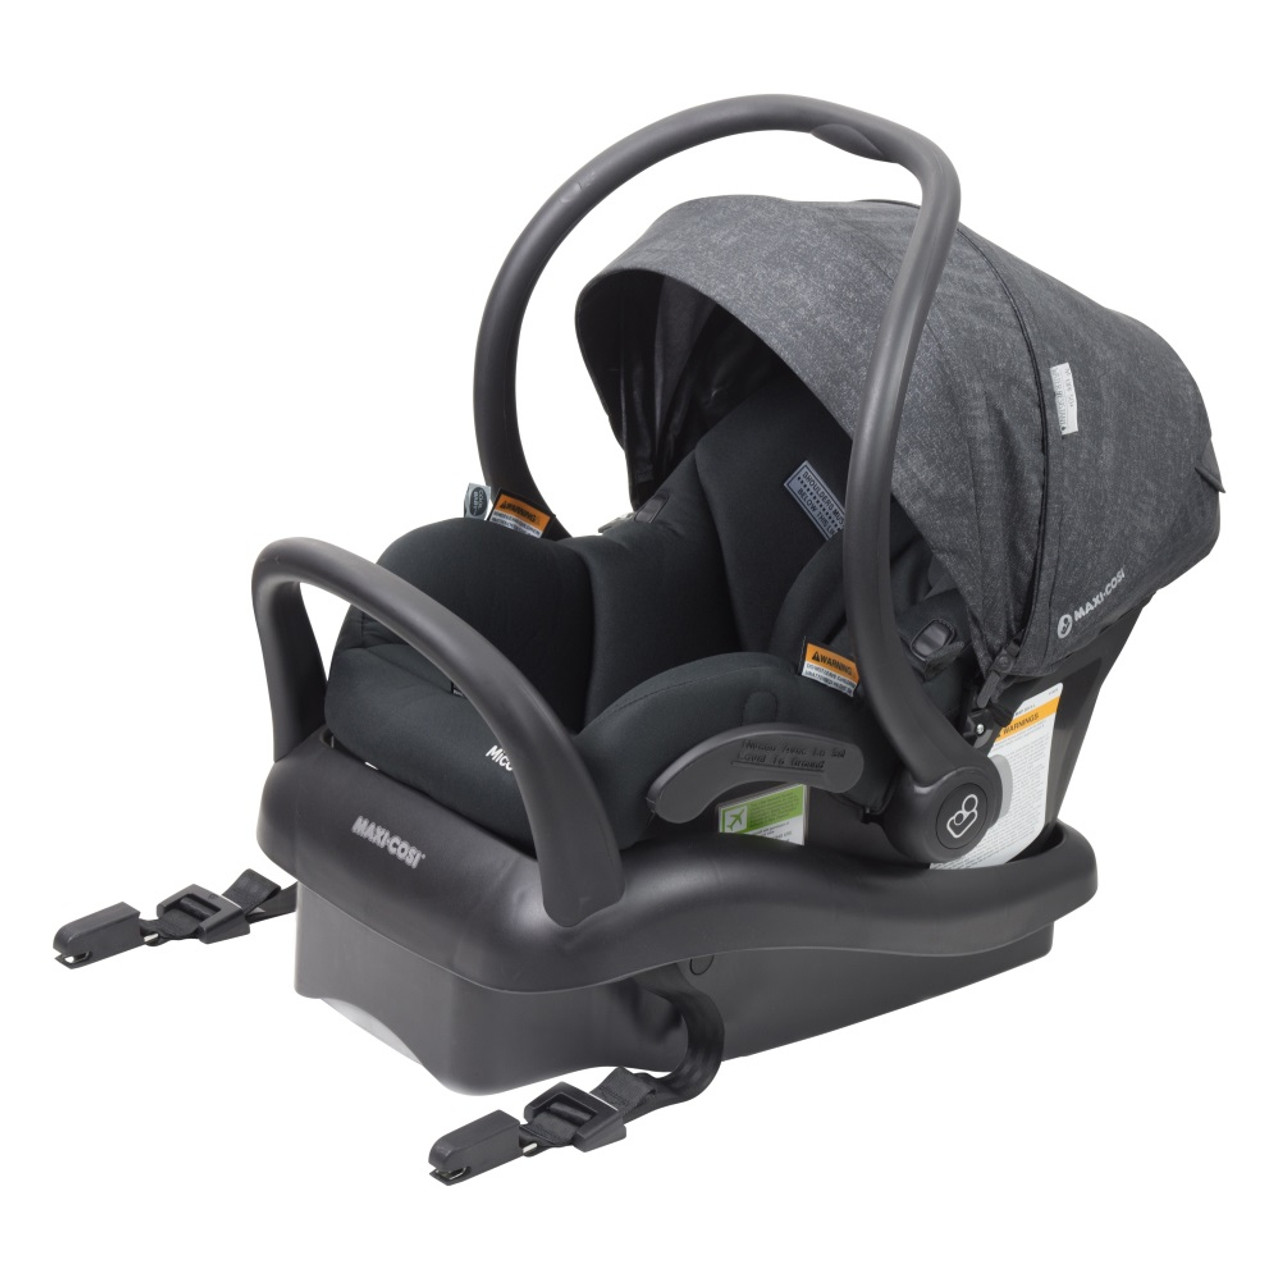 Maxi Cosi infant carrier hire